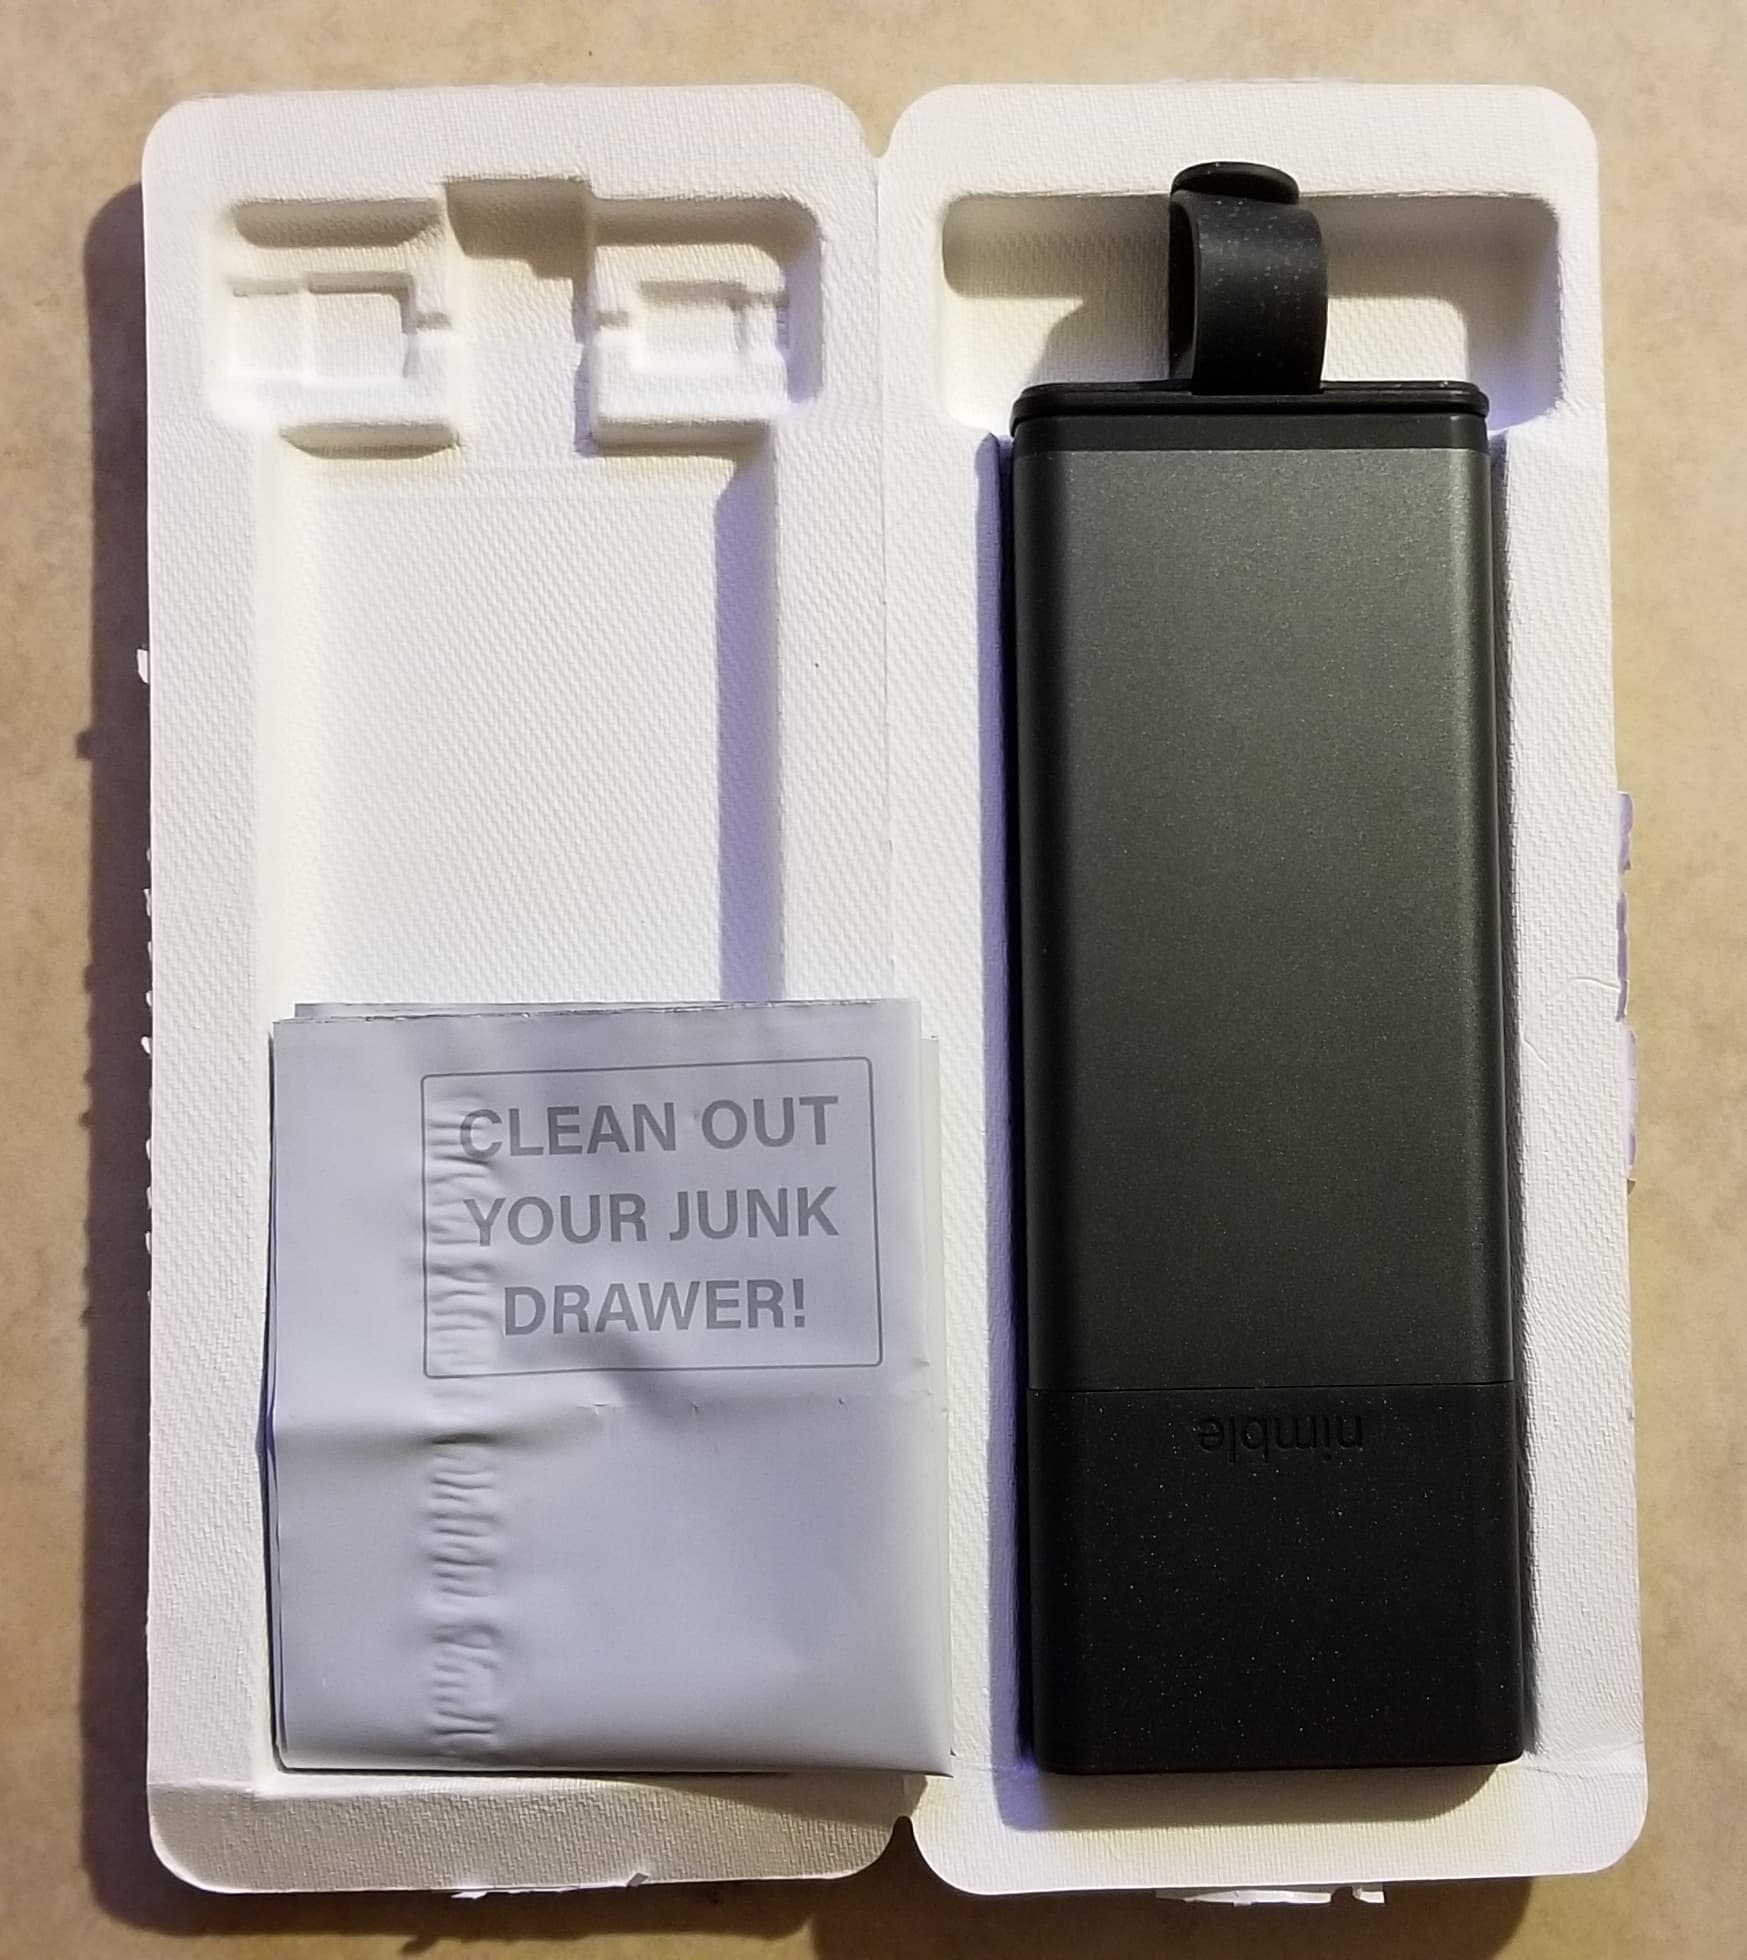 a0a1a404fac814 Nimble produces 3-day (10,000 mAh), 5-day (13,0000 mAh), 8-day (20,000  mAh), and-10 day (26,000 mAh) chargers. For this review, we'll be checking  out the ...